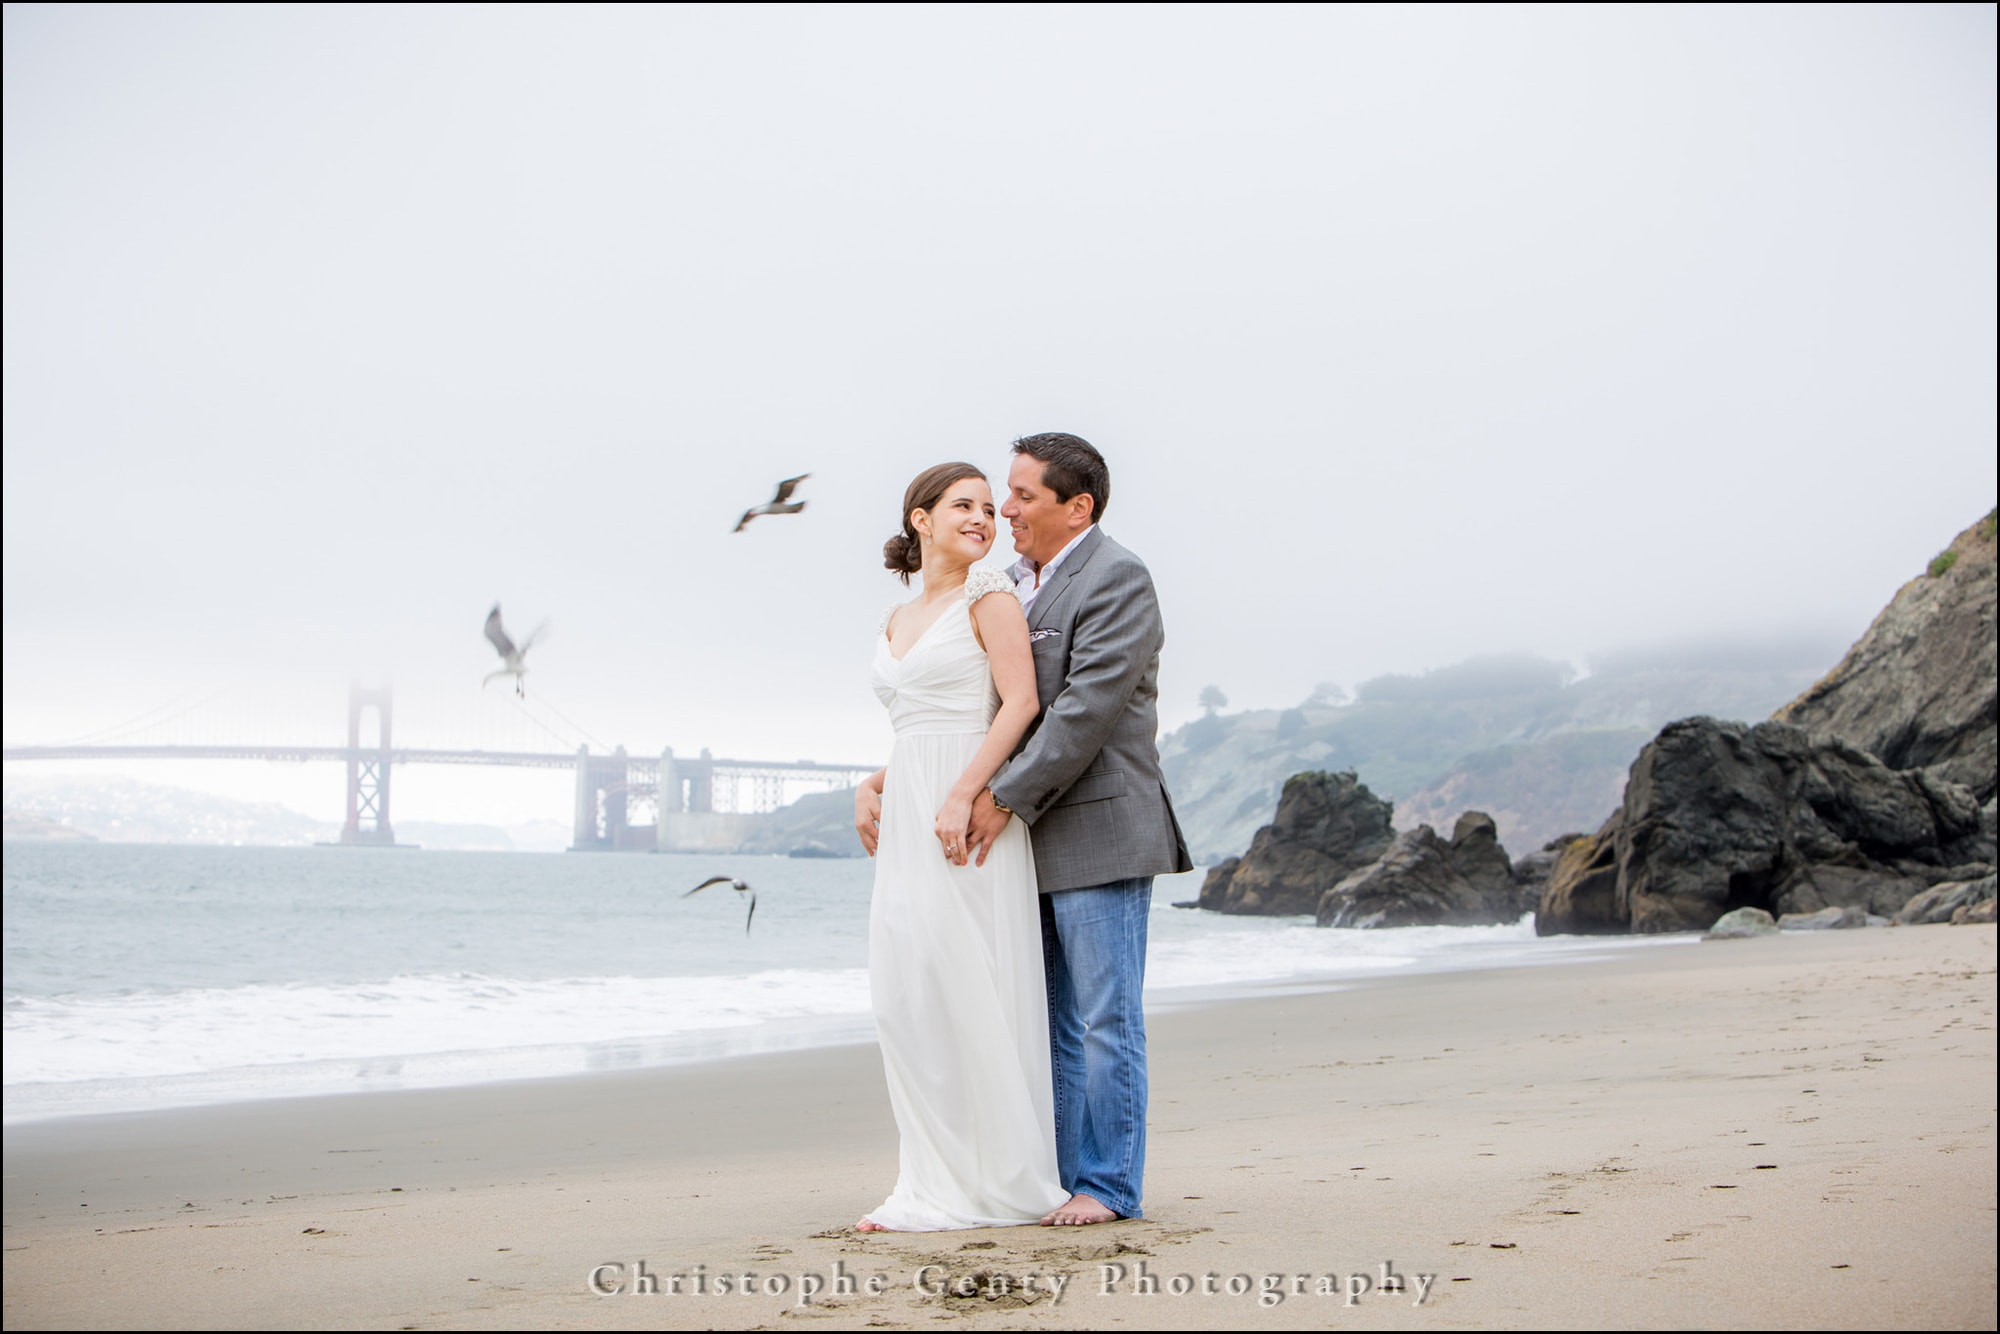 Engagement photography in San Francisco, CA